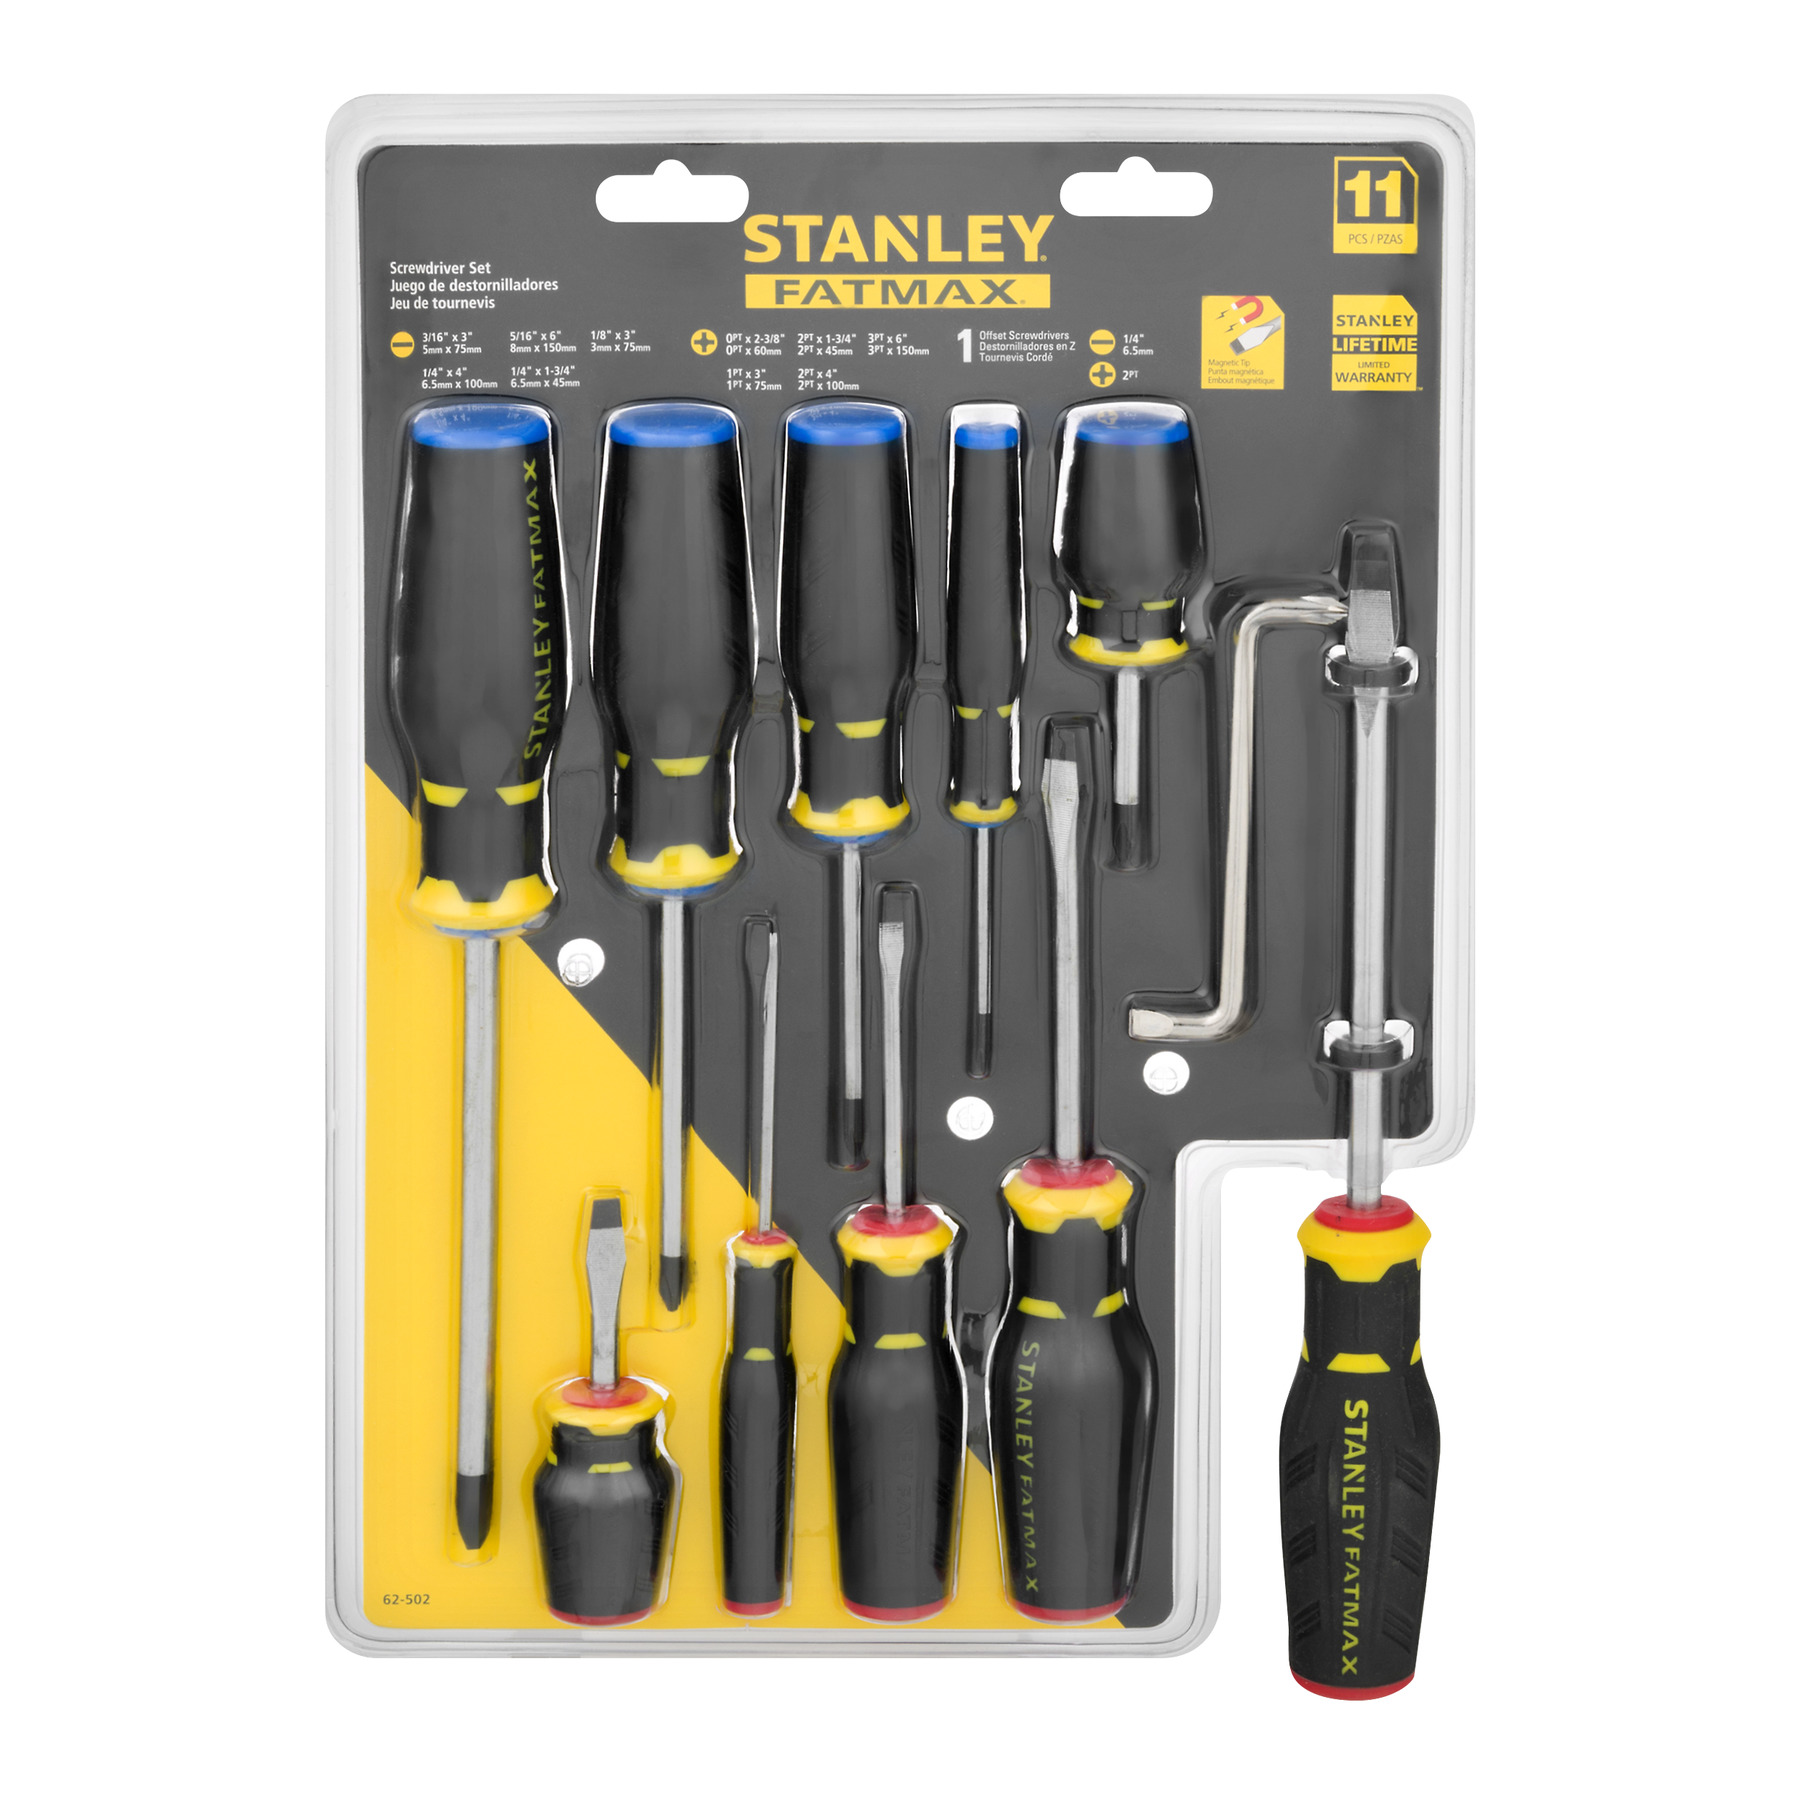 Stanley FatMax Screwdriver Set - 11 PC, 11.0 PIECE(S)